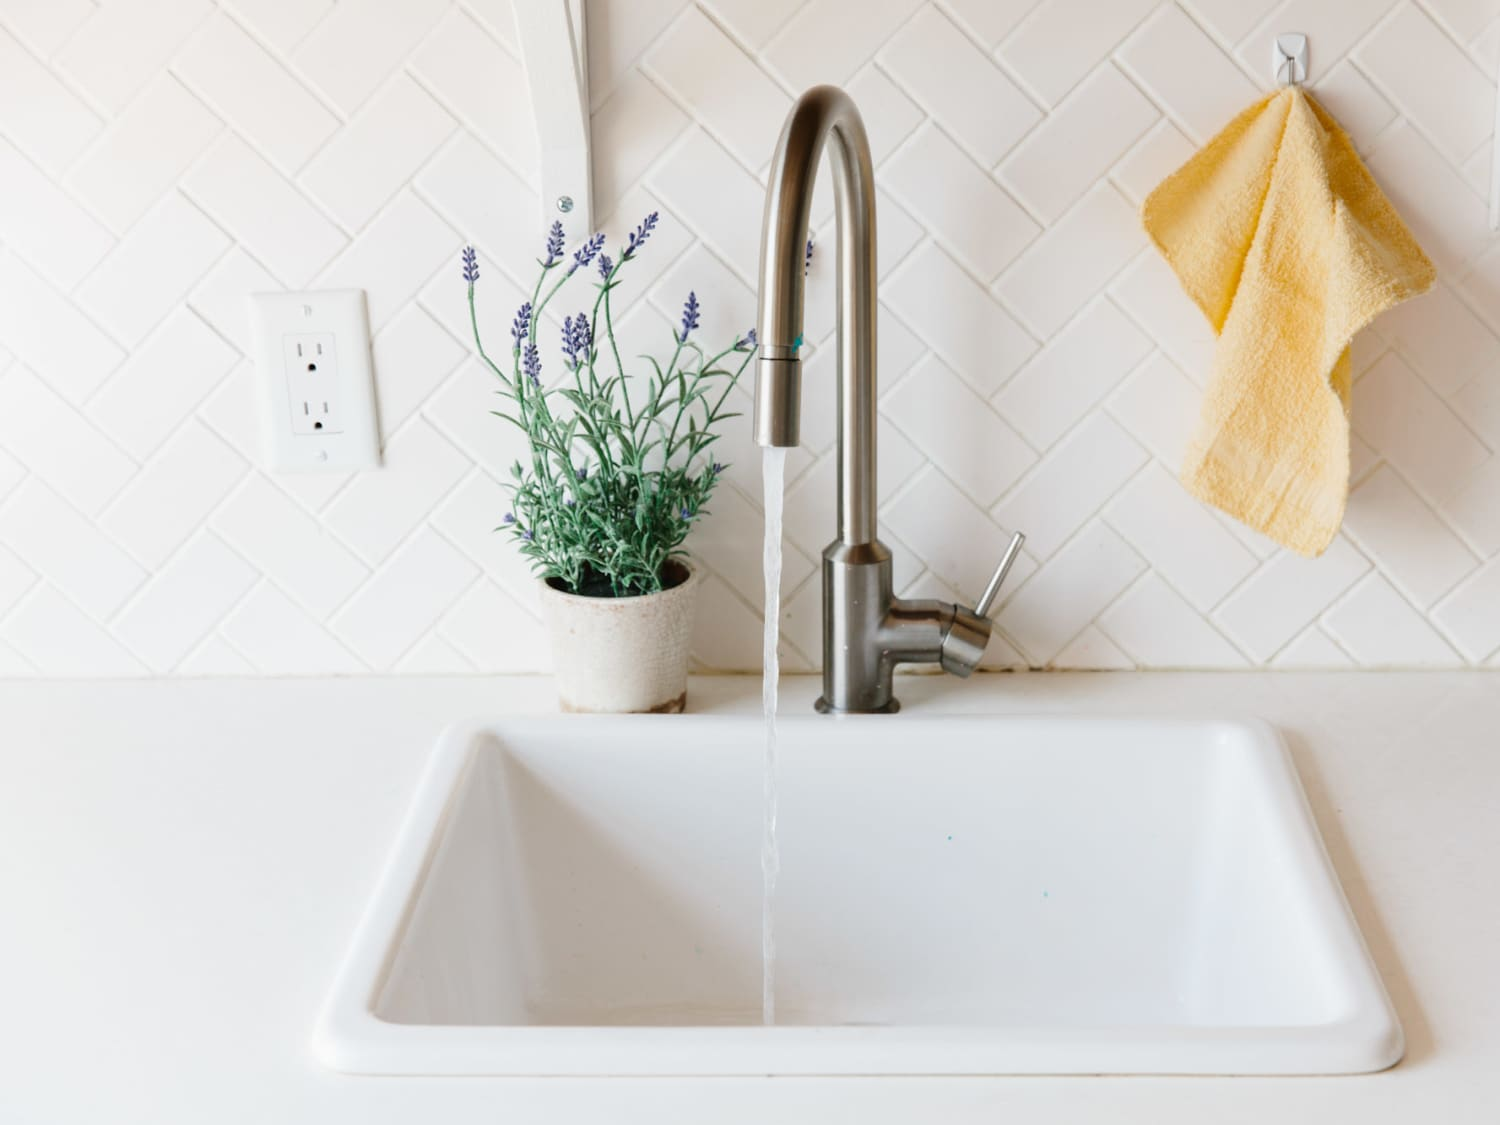 how to fix a slow draining sink